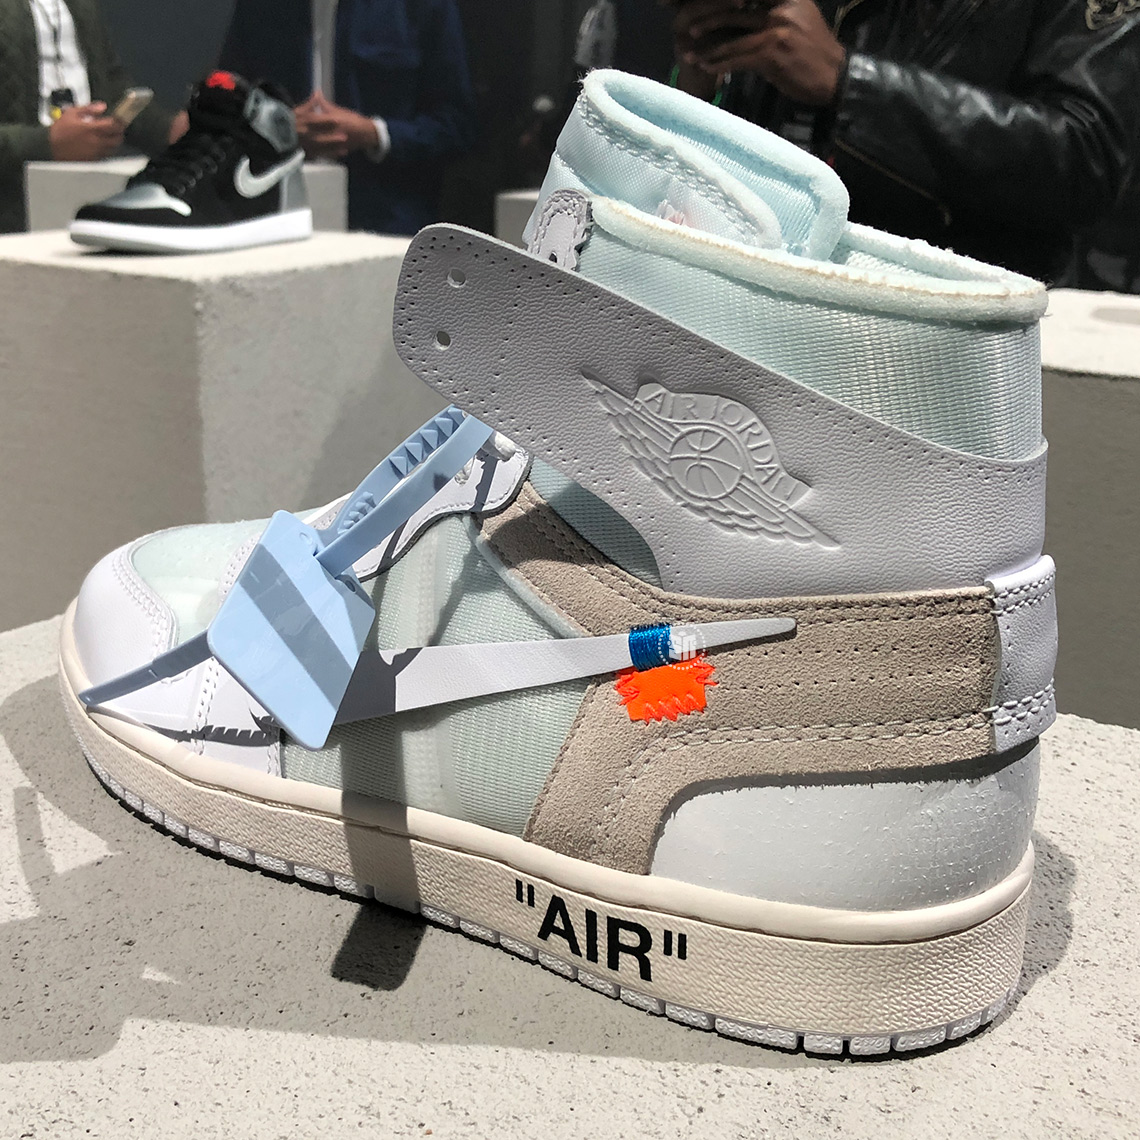 save off 03f3d efbe3 Off-White x Air Jordan 1 Thread | Page 127 | NikeTalk